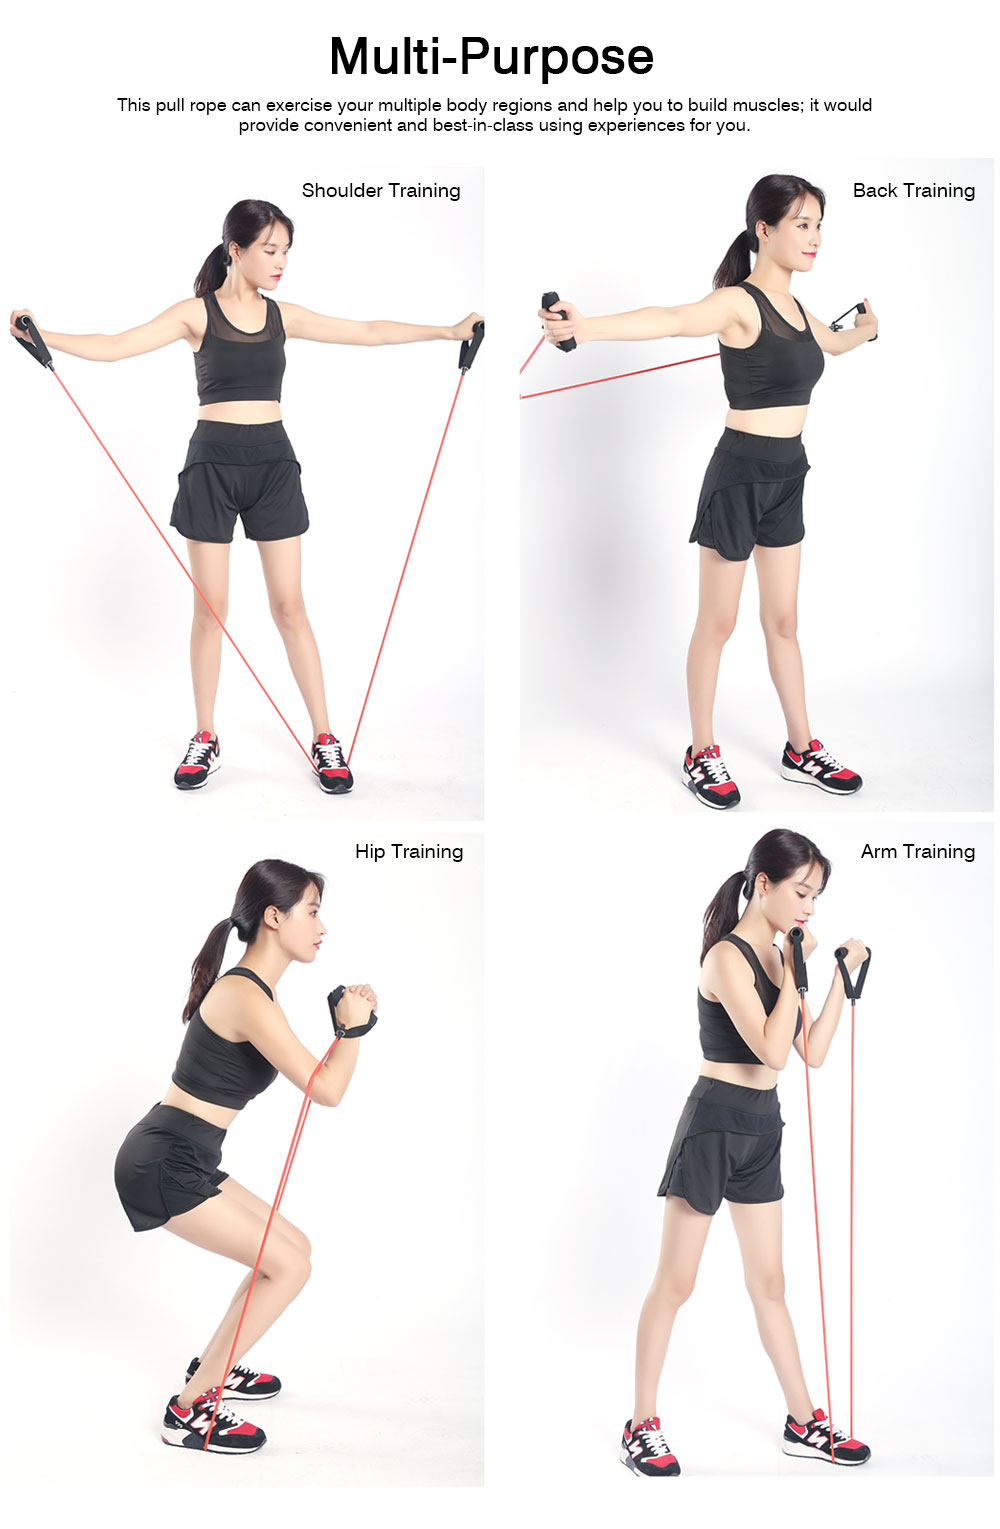 Multifunctional Household Strong-Elastic Rubber Pull Rope, Strength Training Exercise Resistance Band with Door Clasp 4